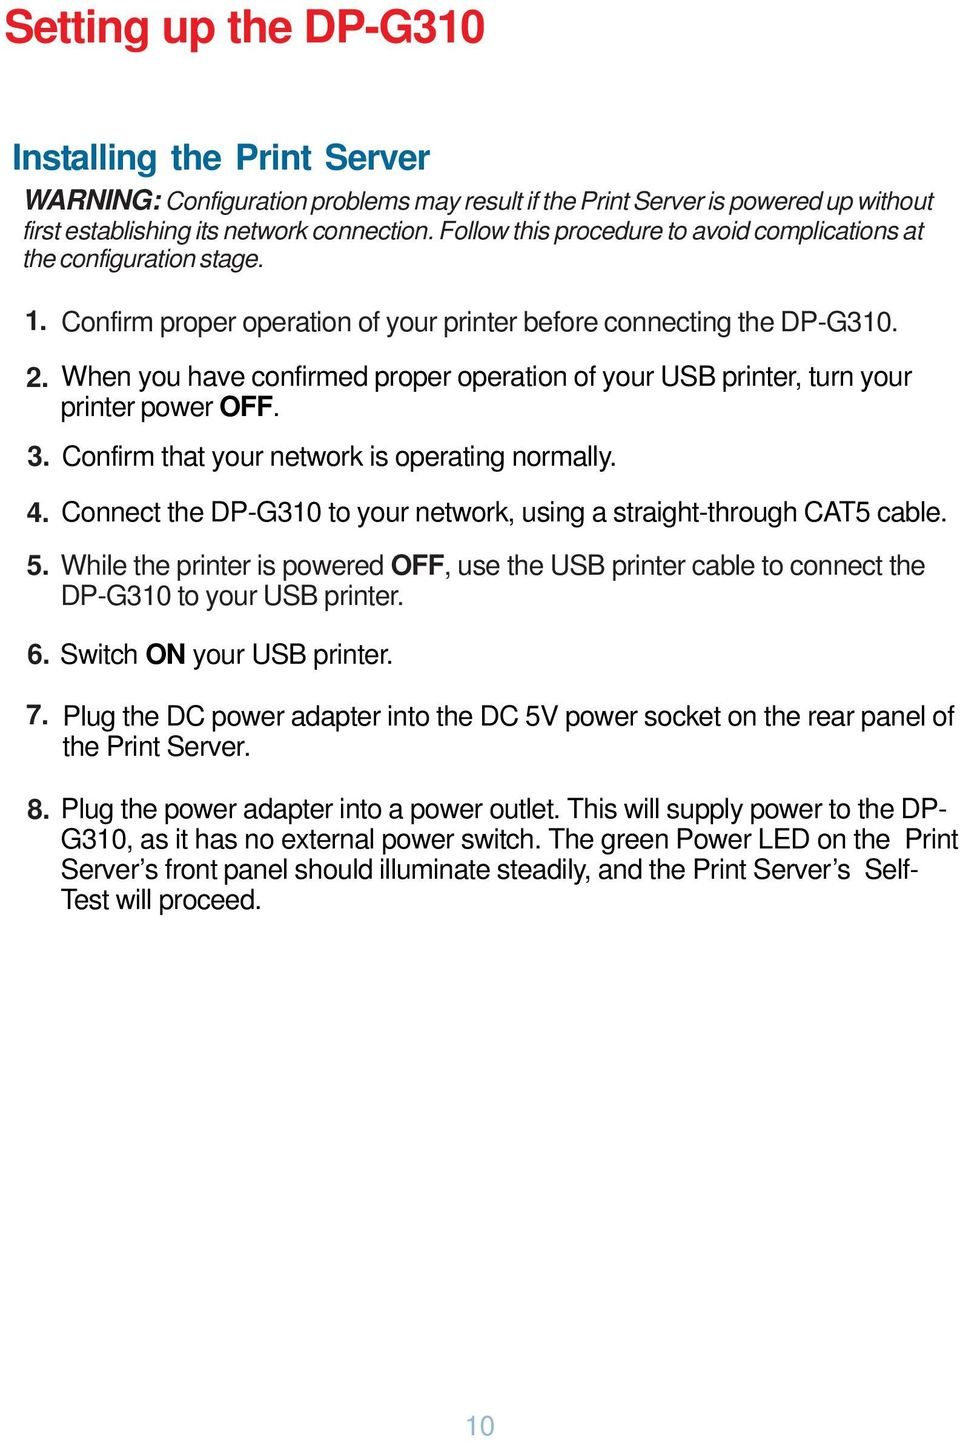 When you have confirmed proper operation of your USB printer, turn your printer power OFF. Confirm that your network is operating normally.